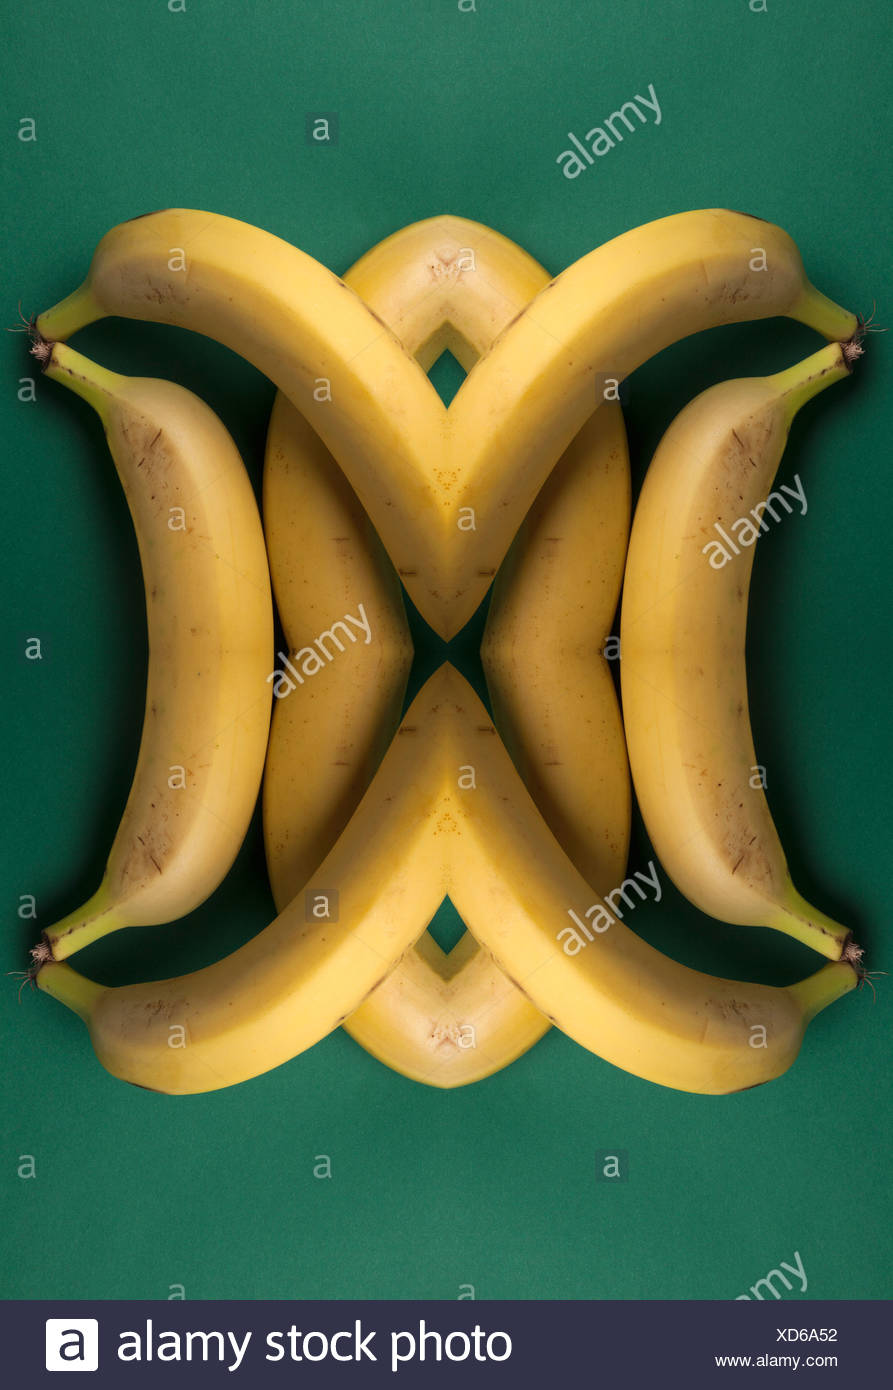 A digital composite of mirrored images of an arrangement of bananas - Stock Image